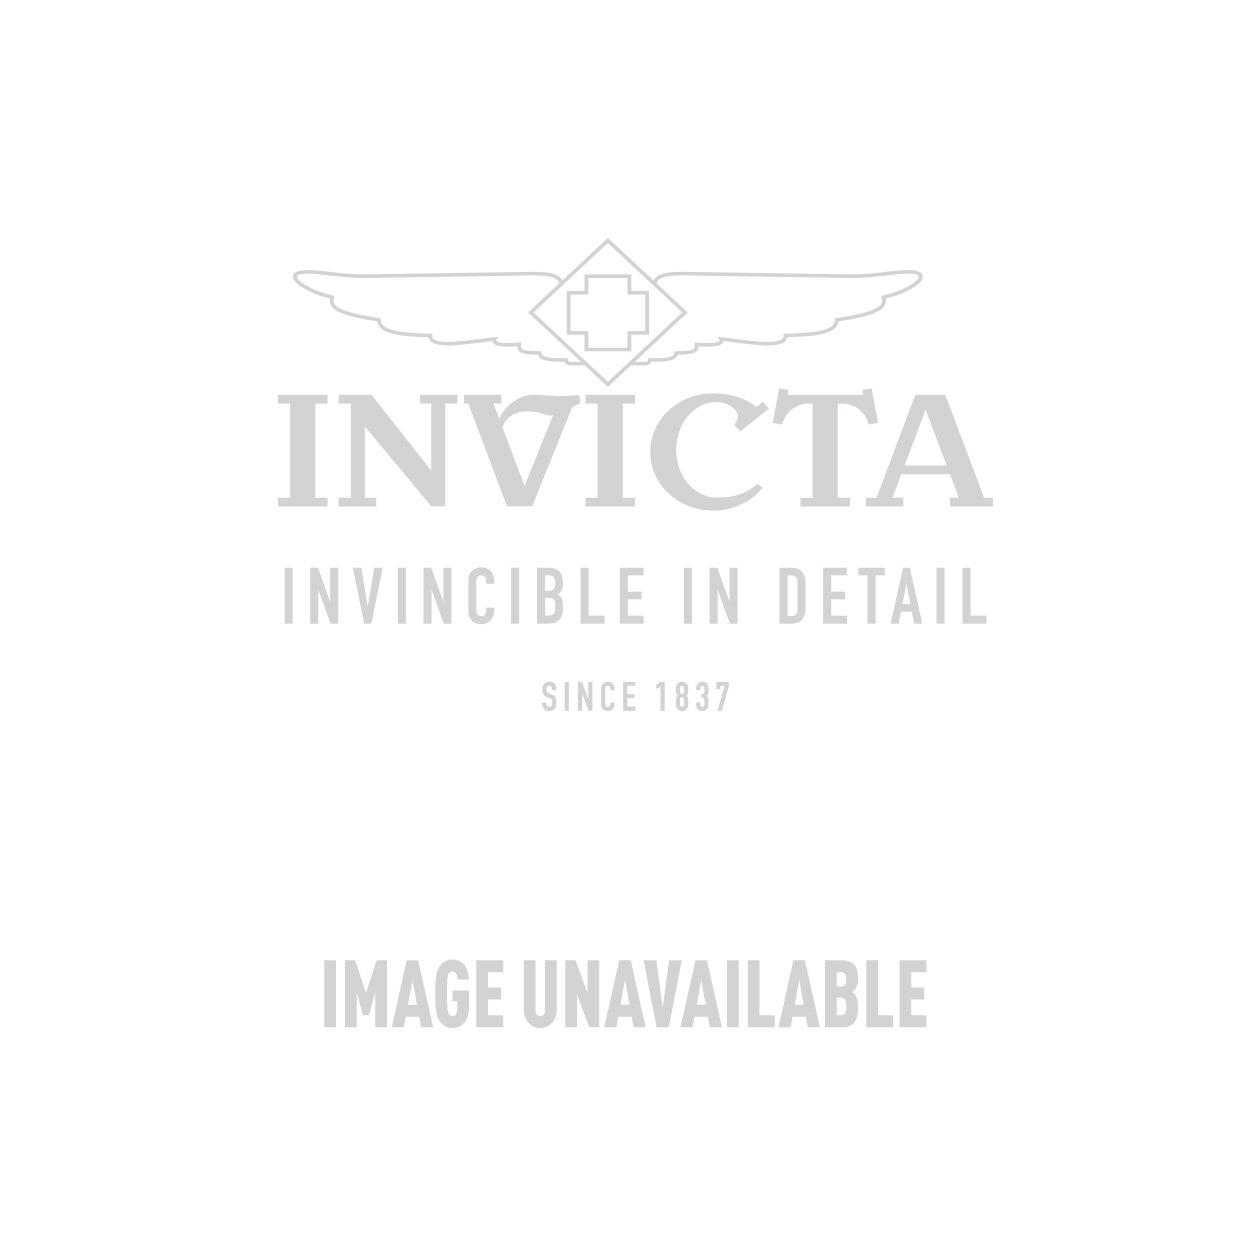 Invicta Specialty Quartz Watch - Rose Gold case with Rose Gold tone Stainless Steel band - Model 1271